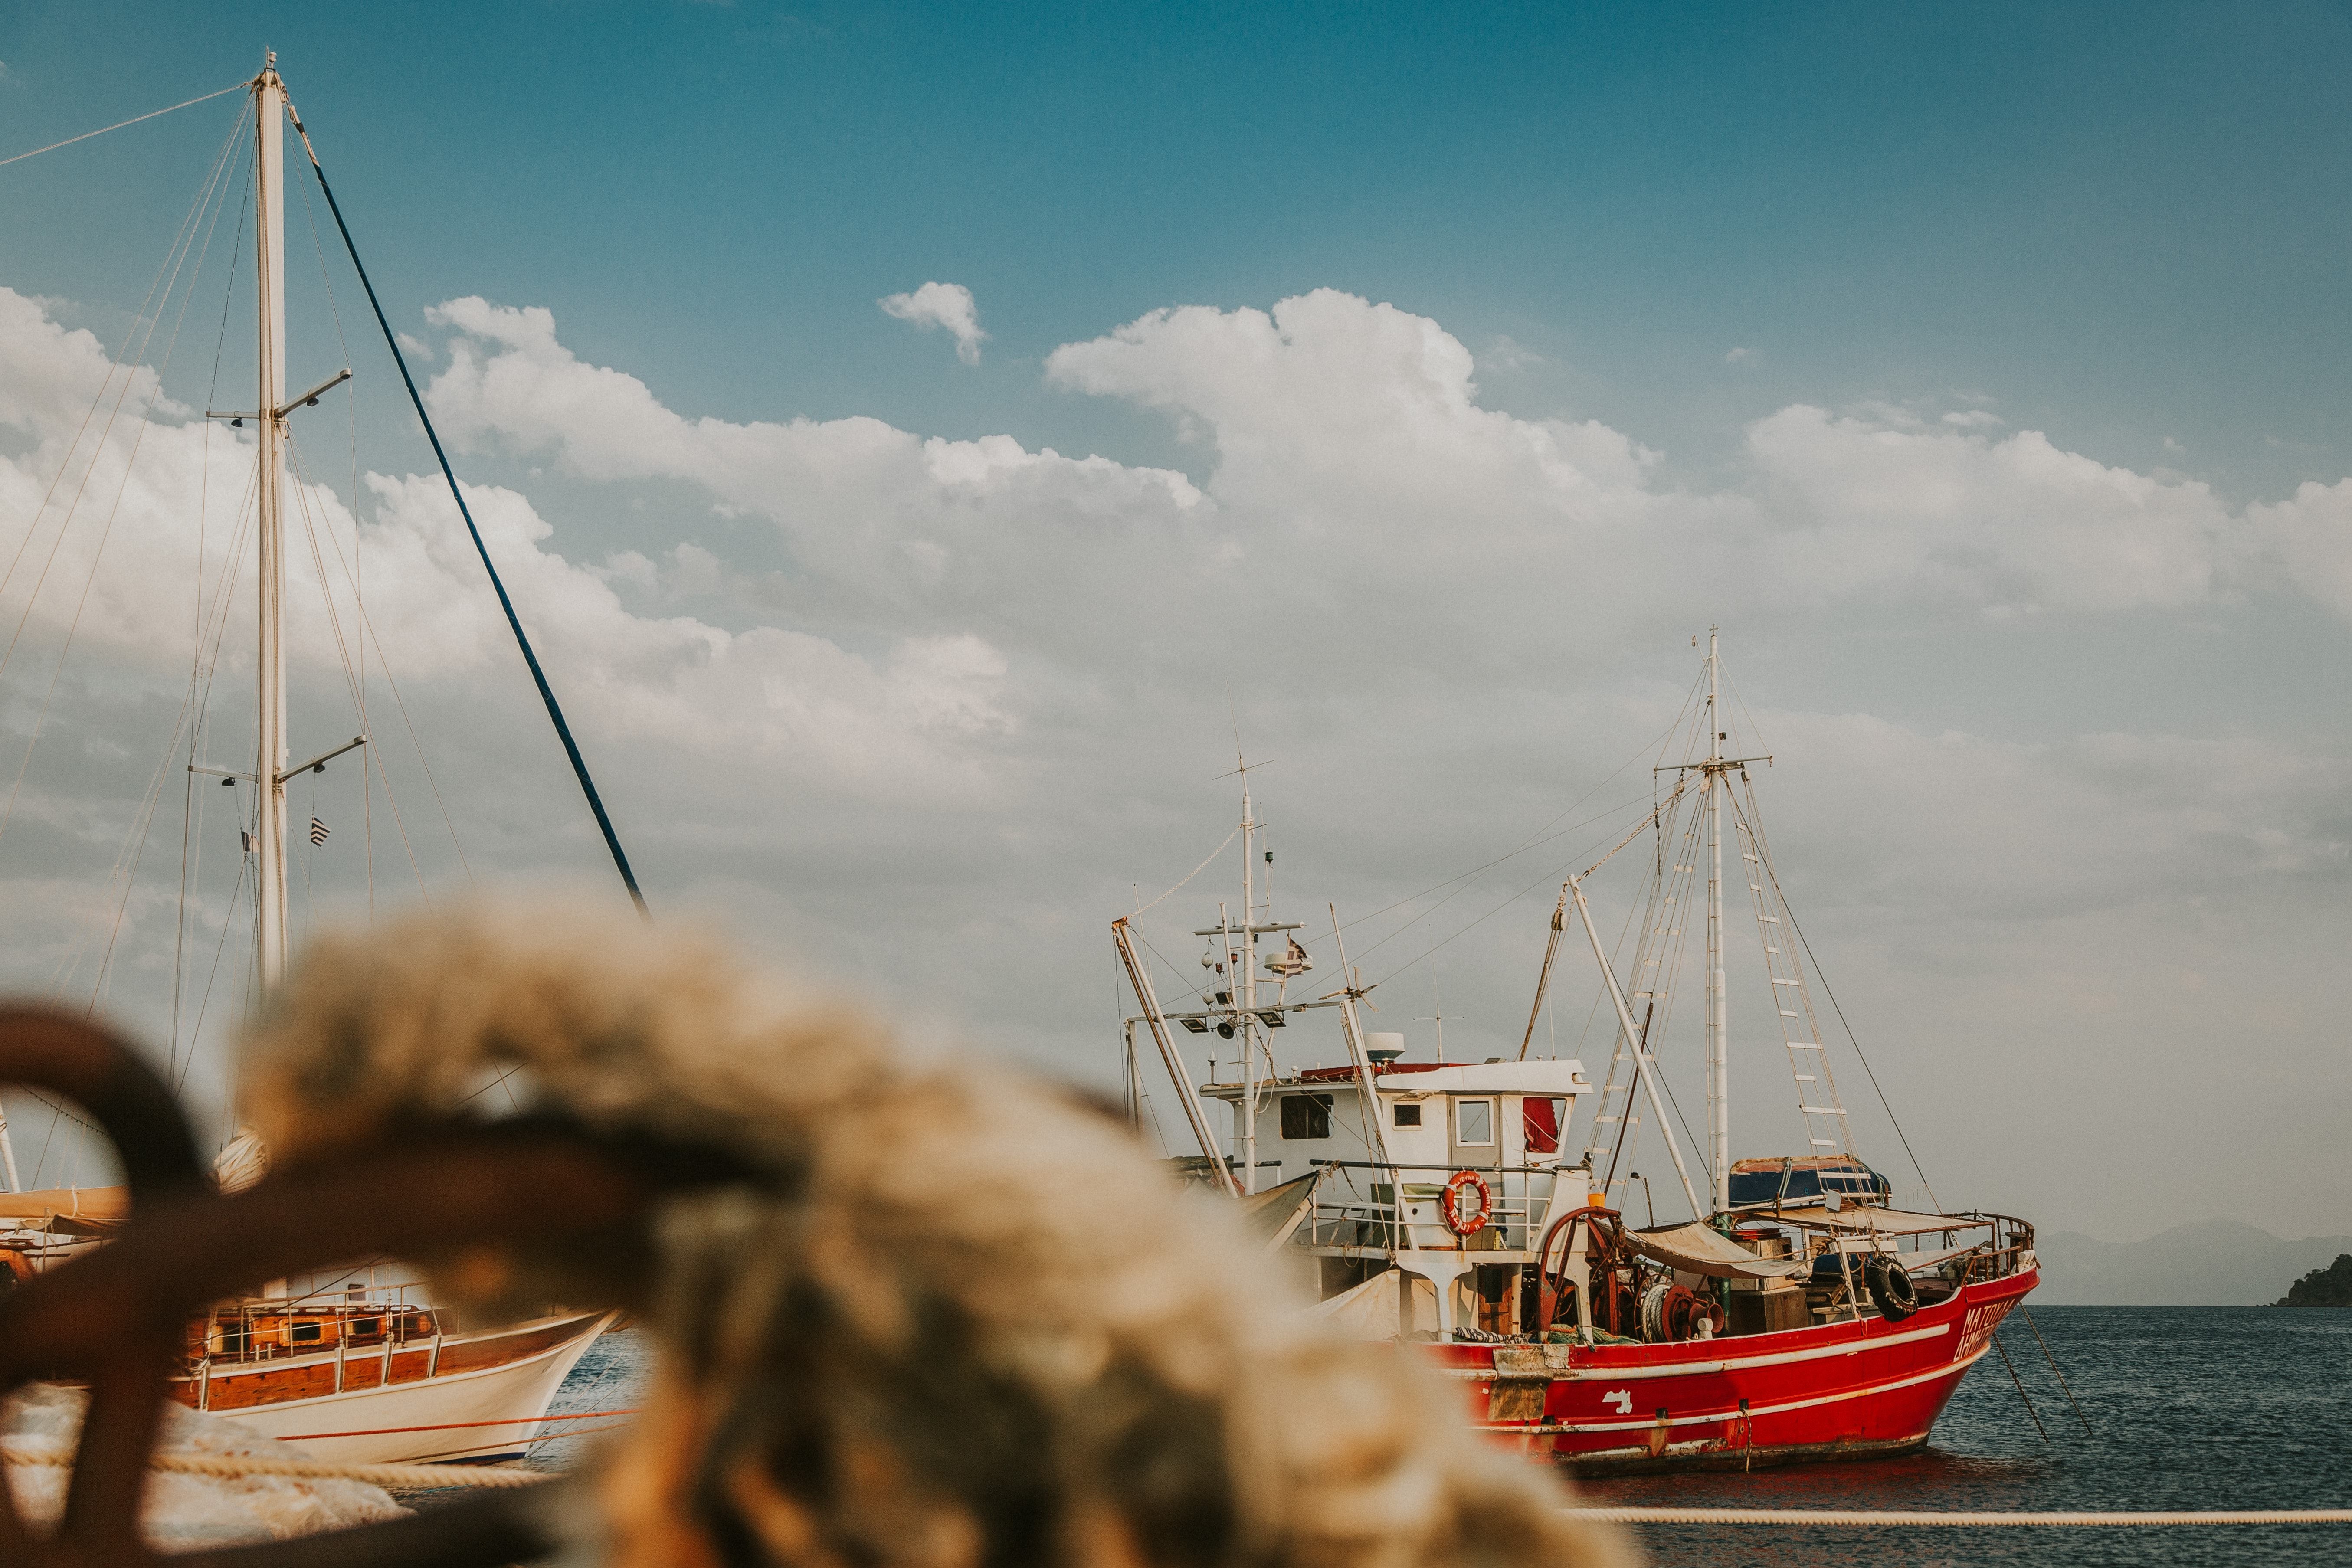 red and white fishing vessel on sea under cloudy sky